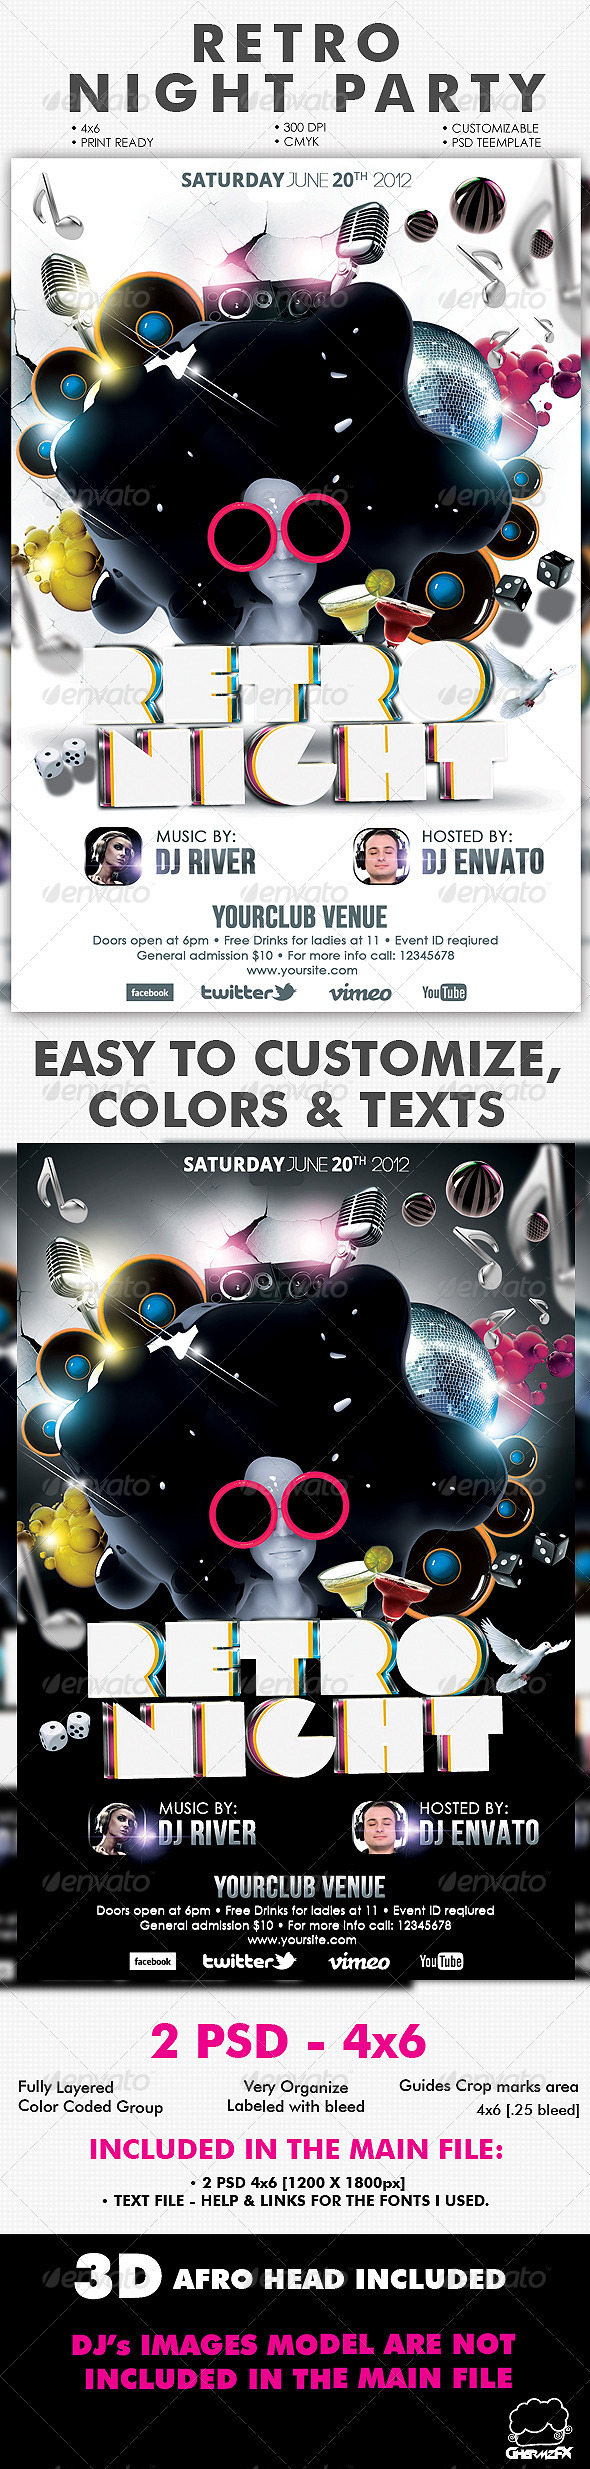 retro night party flyer template by hermz